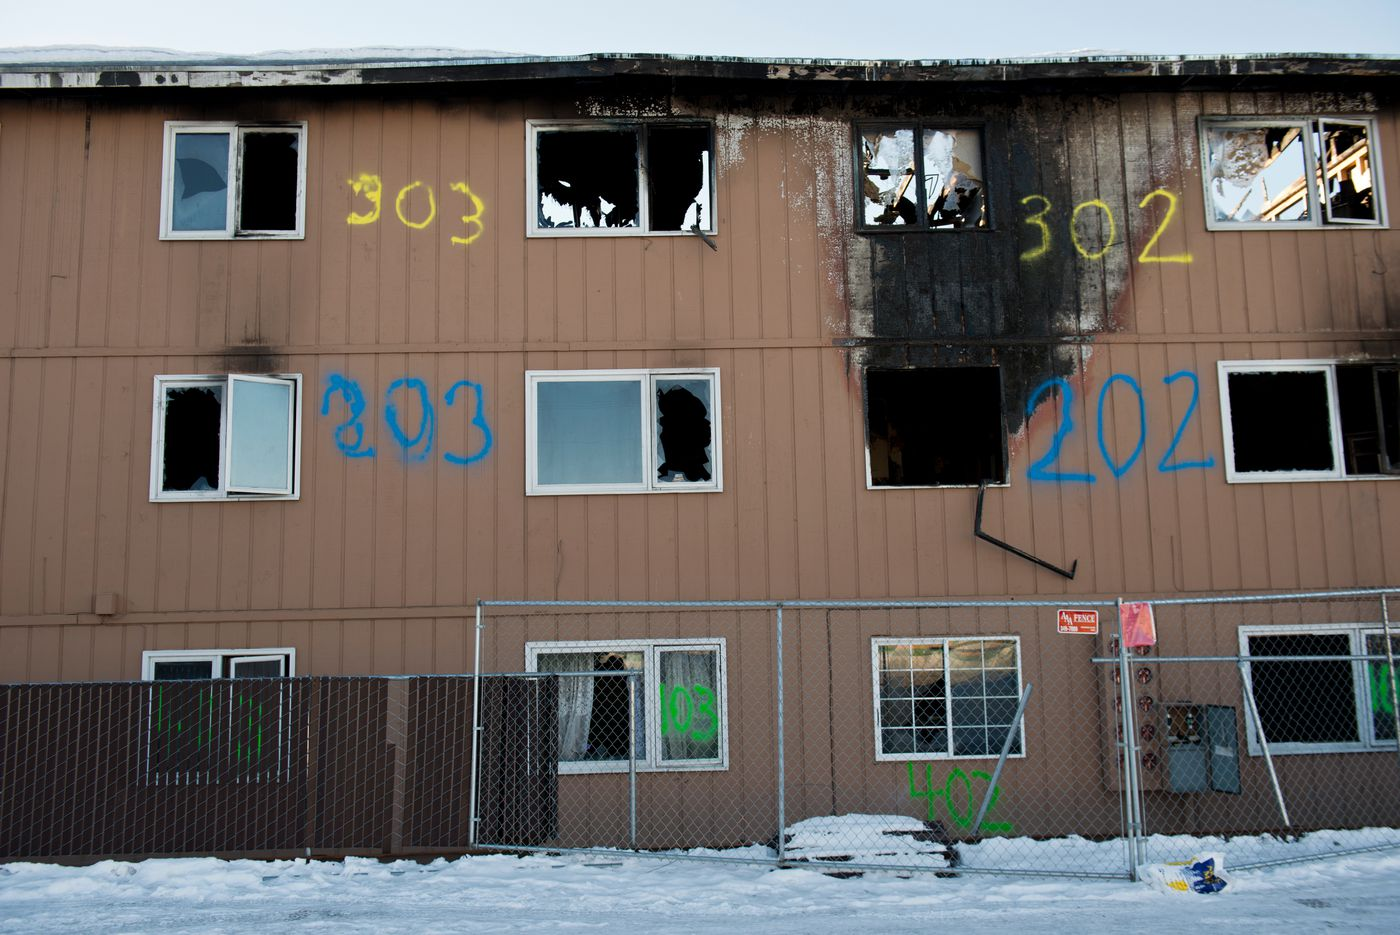 Four members of the Engelking family were home at apartment 303 when fire spread through Royal Suite Apartments. All escaped the building from the third floor window. The fire killed three people and destroyed much of Royal Suite Apartments in February 2017. (Marc Lester / Alaska Dispatch News)